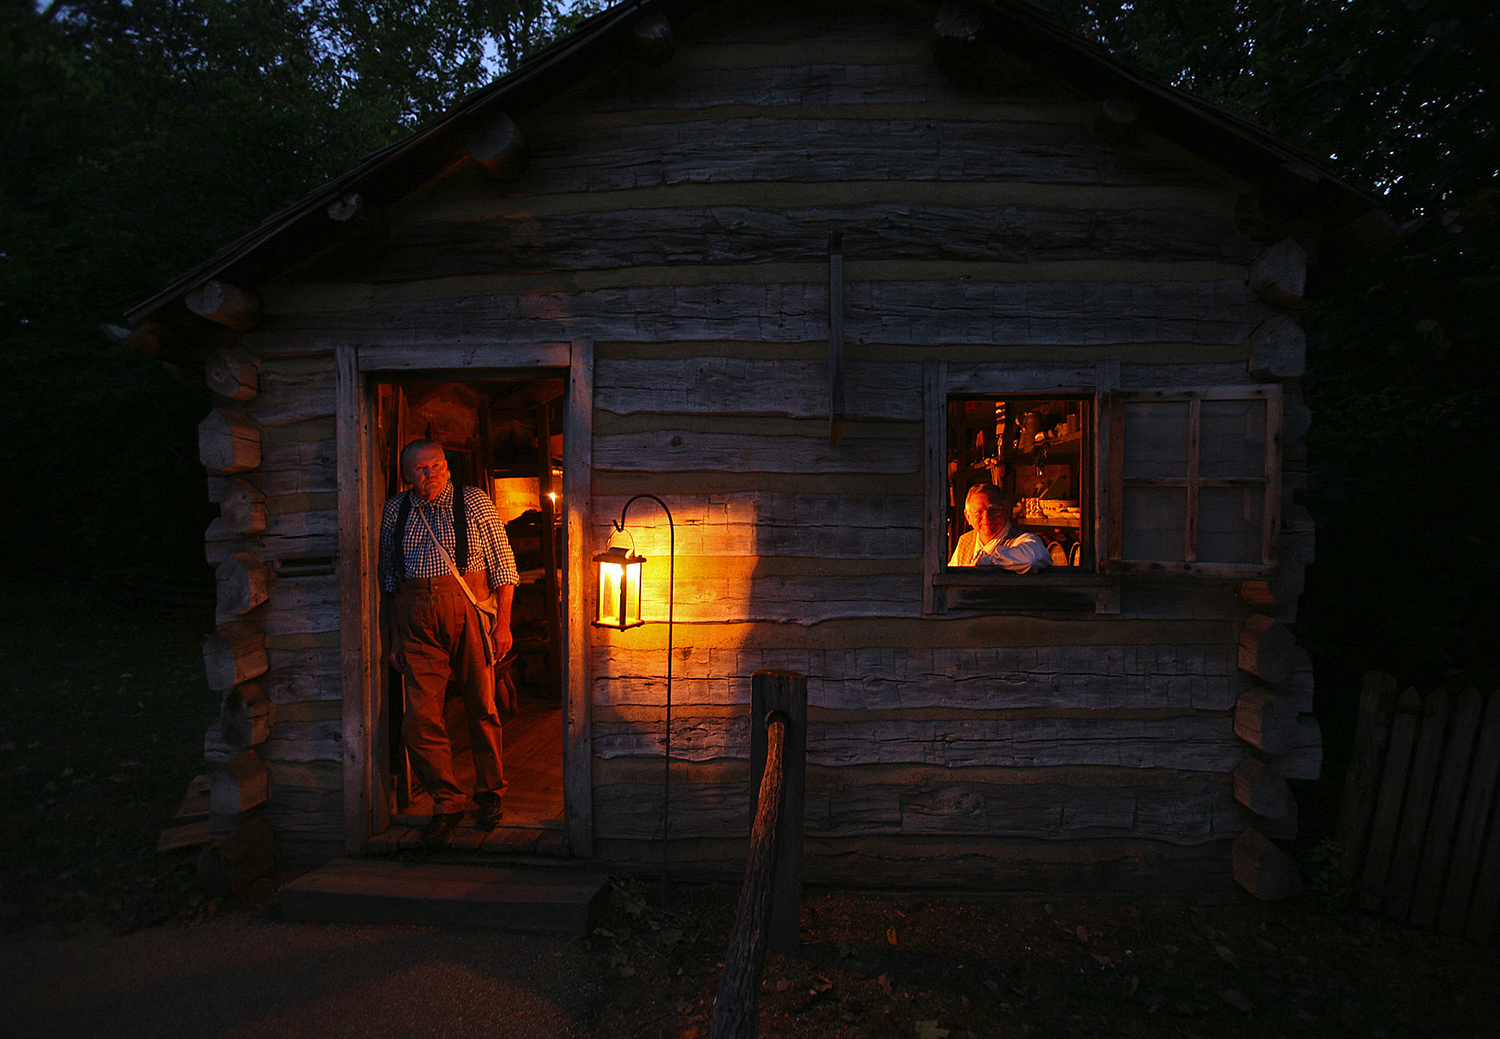 John Johnson, left, and John Blankenberger are volunteers in the Berry-Lincoln store at Lincoln's New Salem State Historic Site. The two were on hand for the annual candlelight tours in the village. Rich Saal/The State Journal-Register